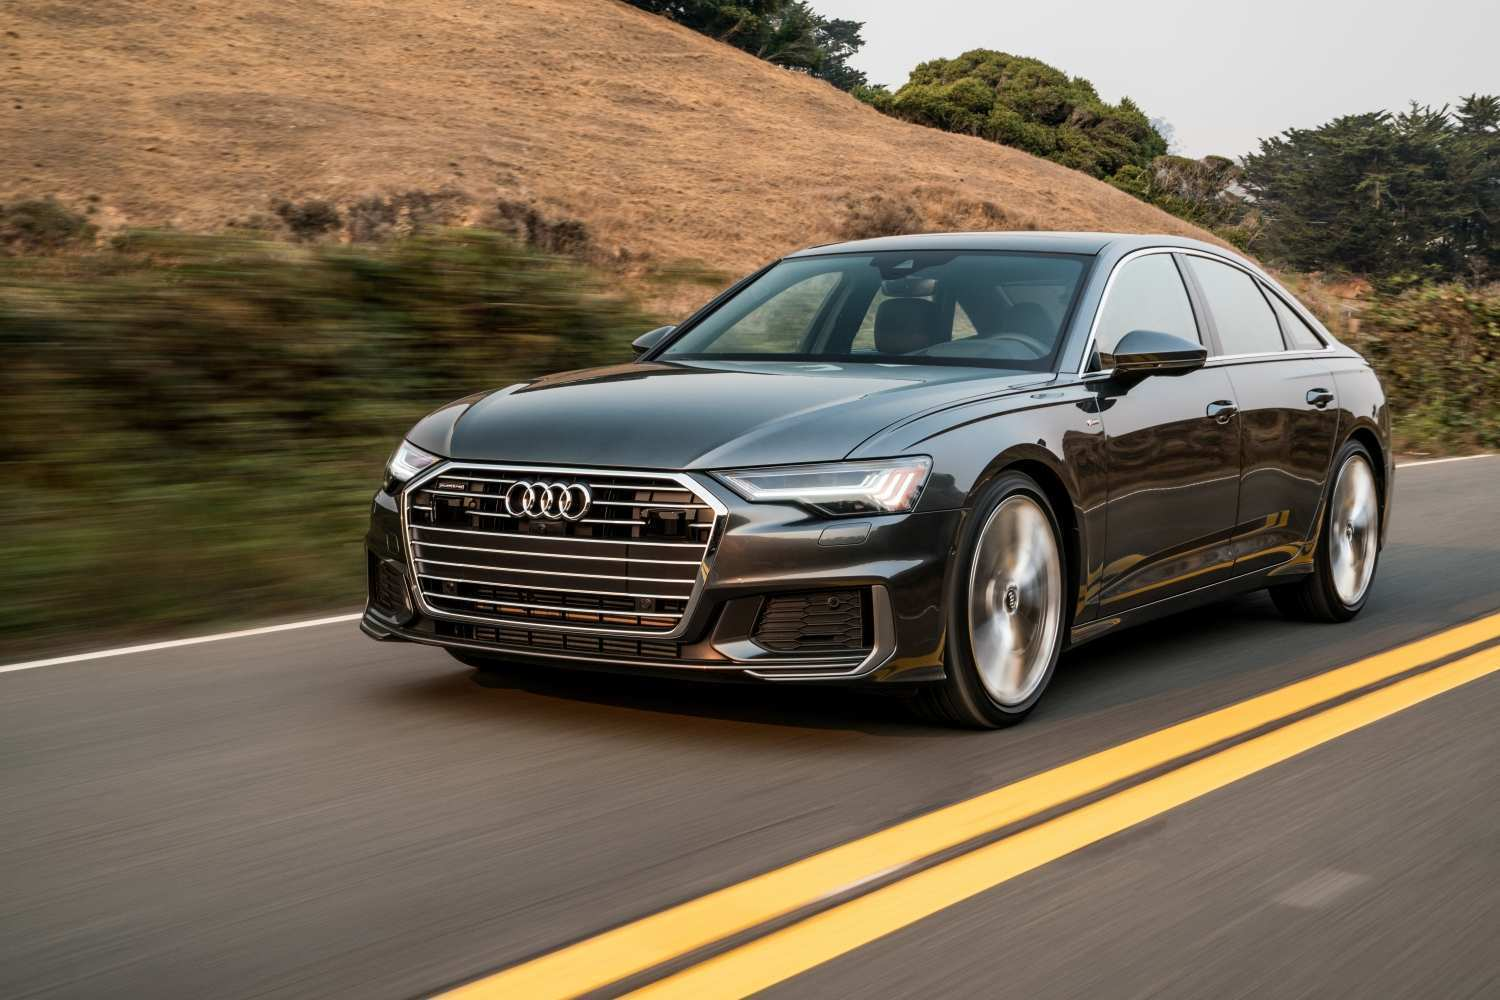 86 Great 2019 Audi A6 Msrp Price and Review for 2019 Audi A6 Msrp